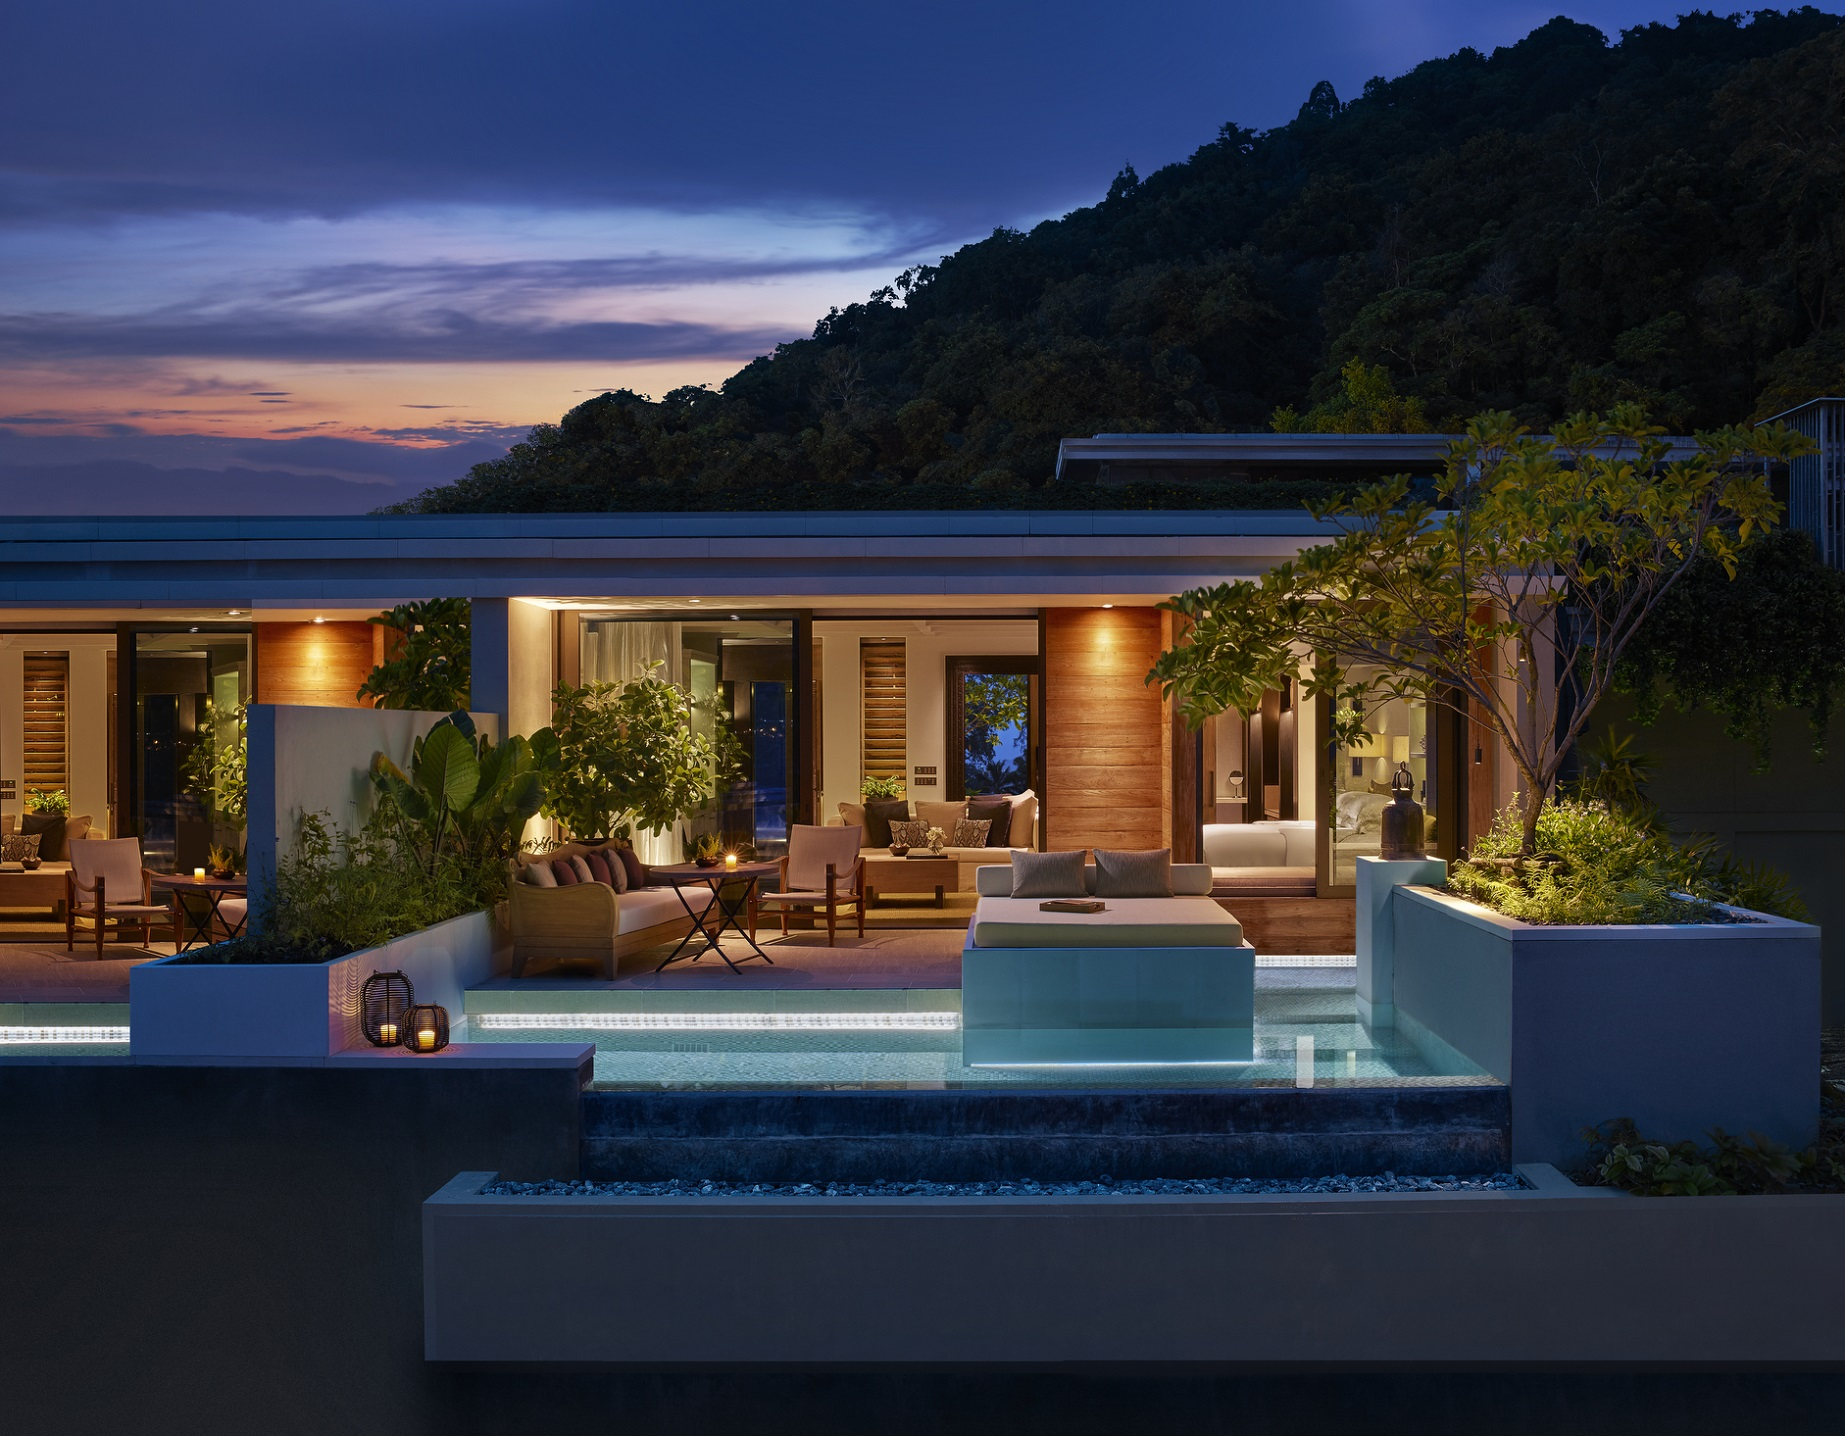 Take a look inside the incredible new Rosewood Phuket